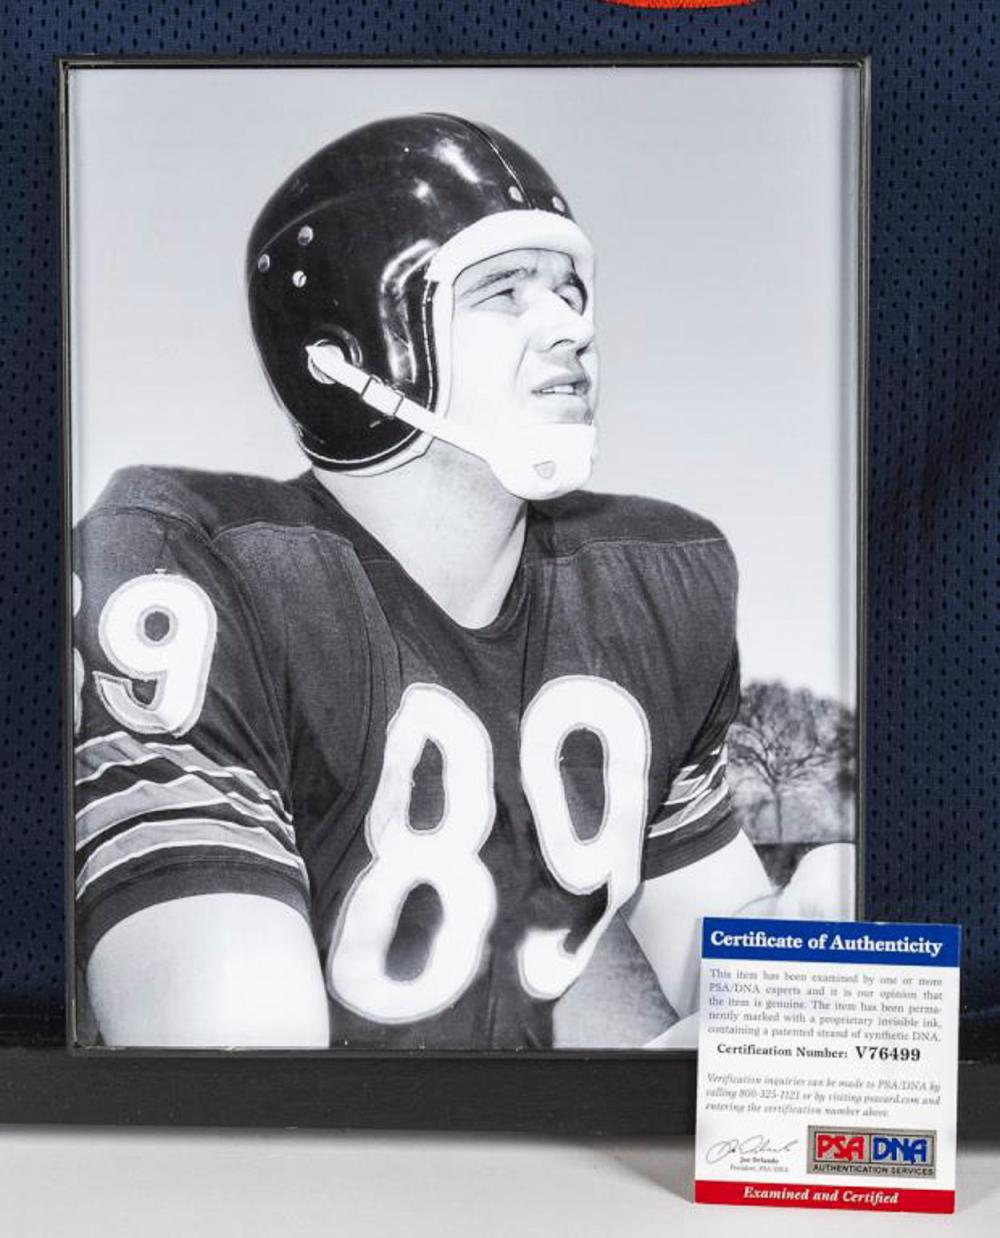 9a9dde5f7d4 Autographed Mike Ditka Football Jersey